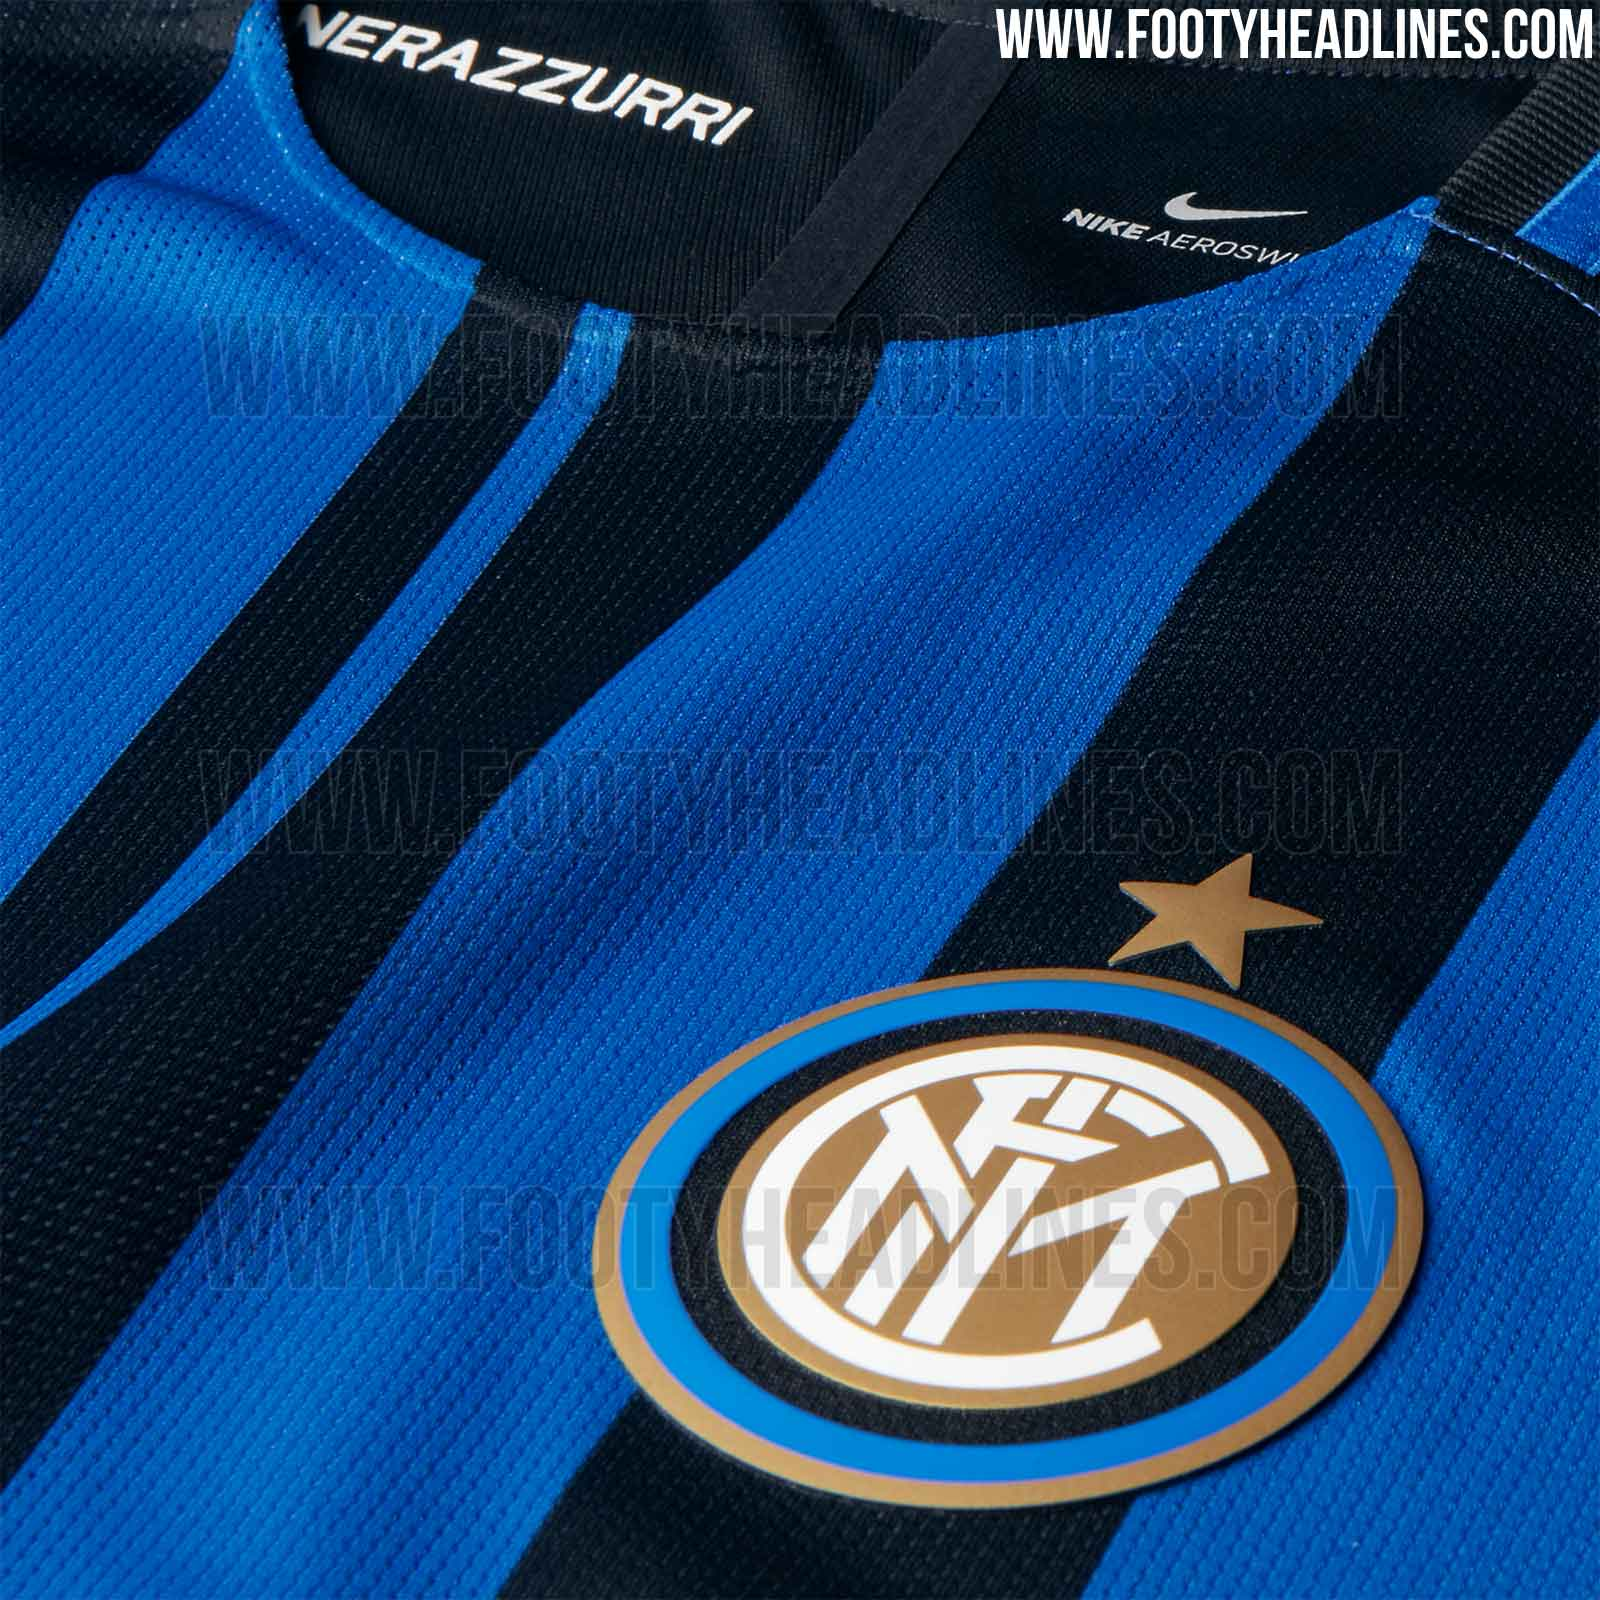 maillot inter milan domicile 2017 2018. Black Bedroom Furniture Sets. Home Design Ideas